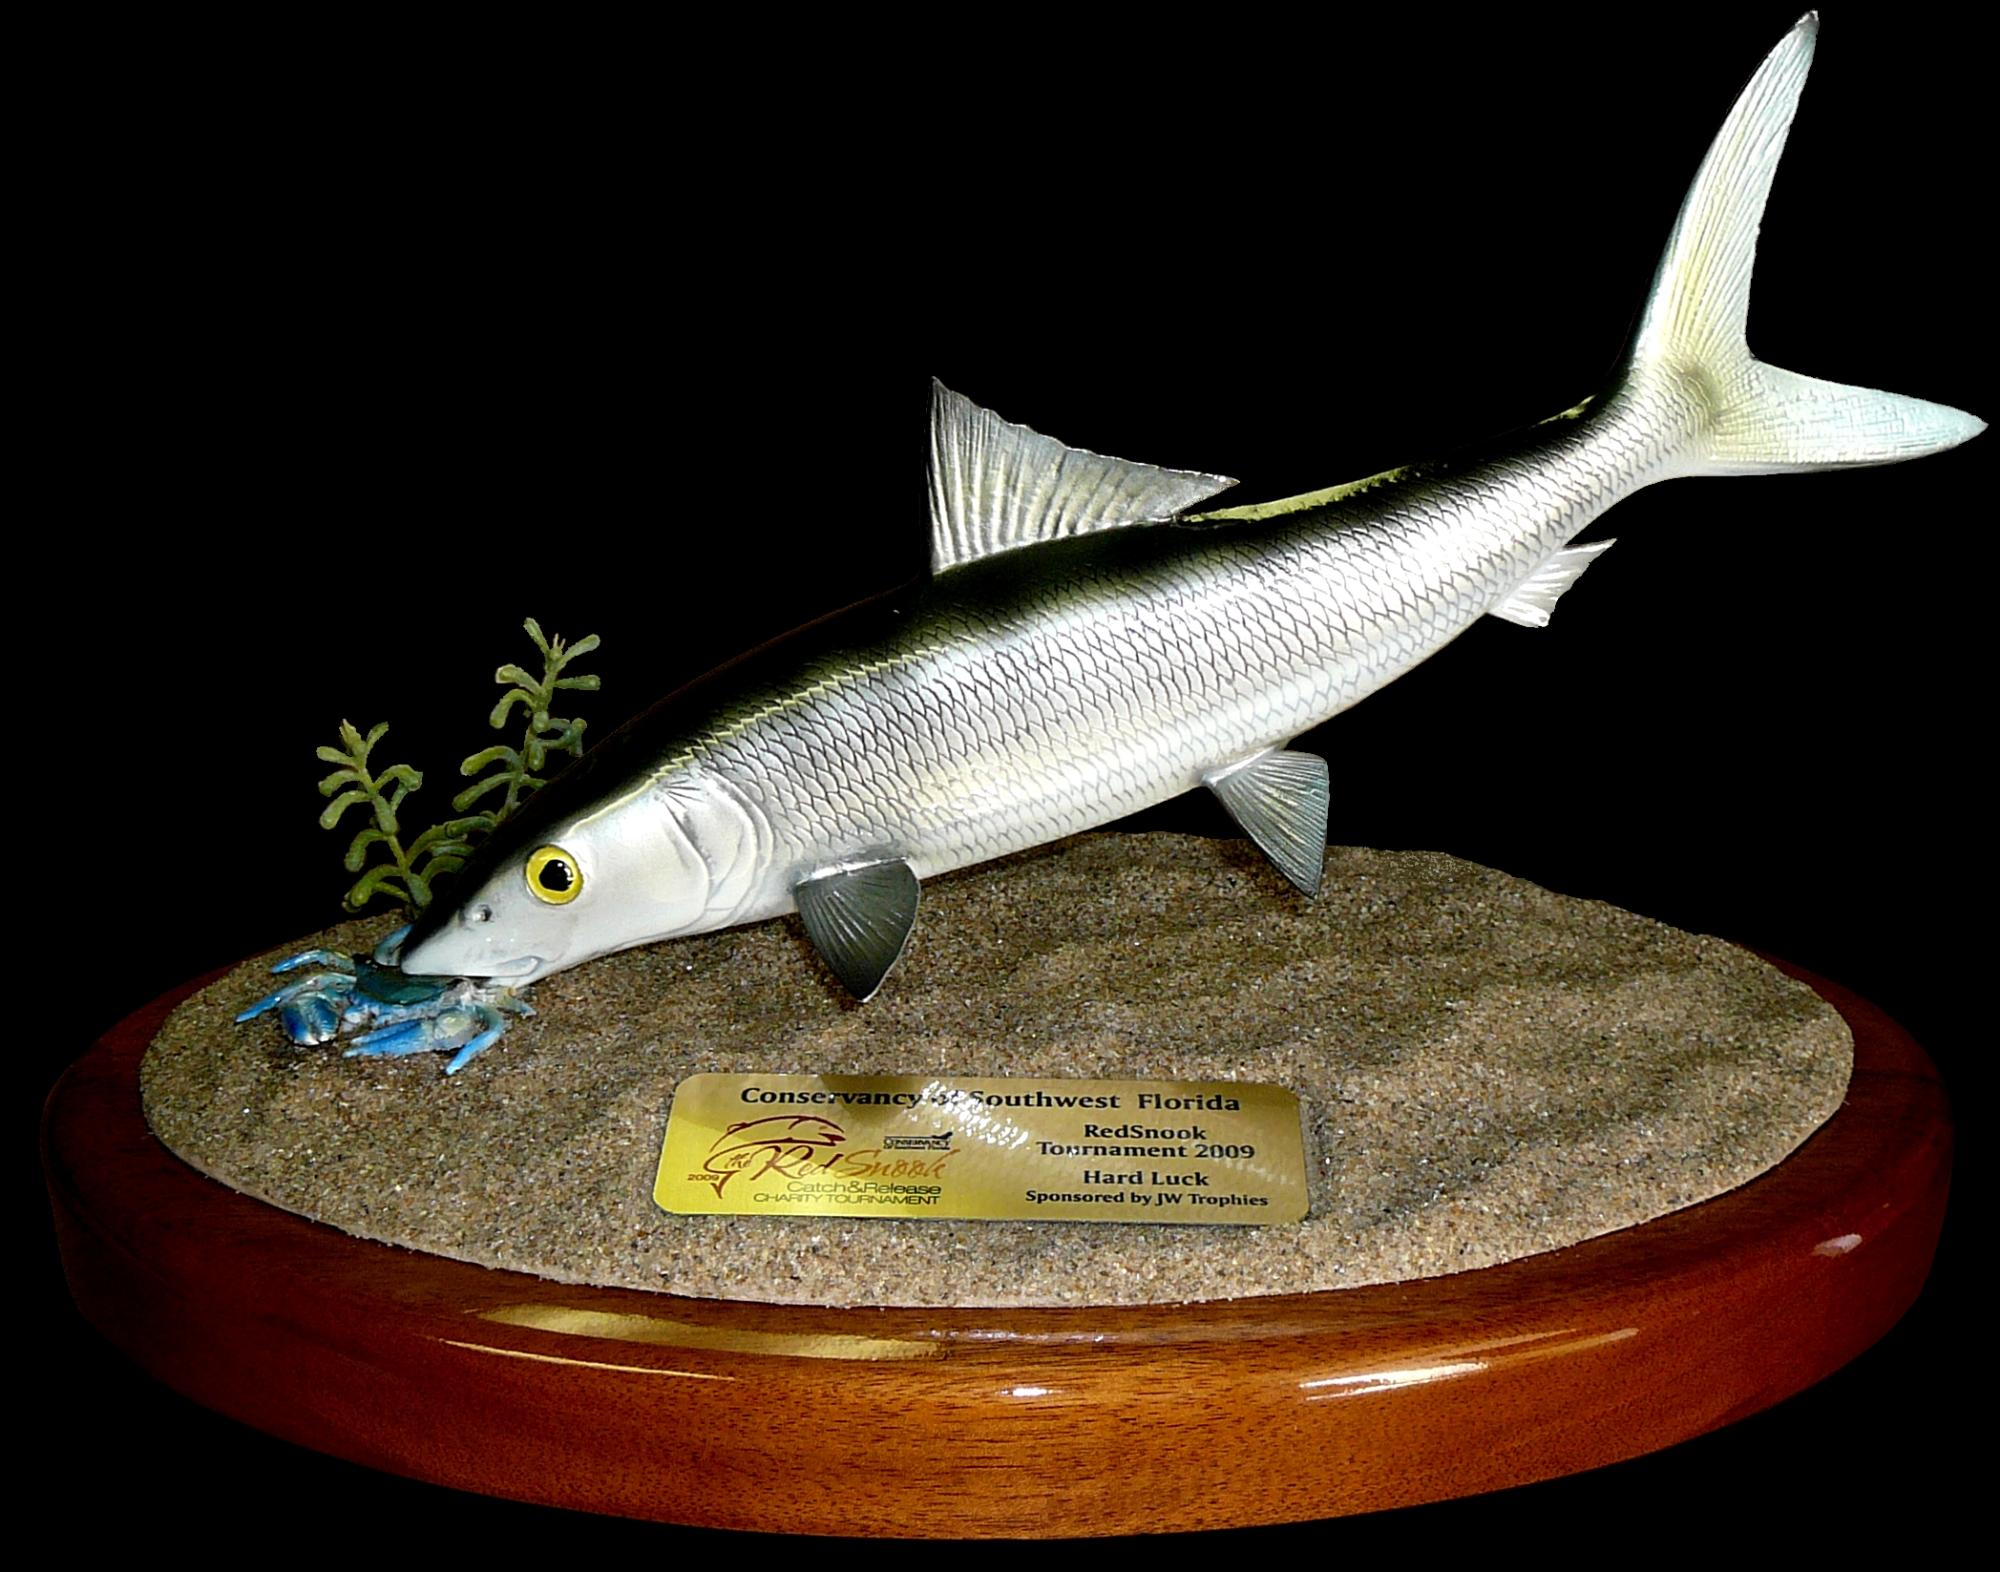 bonefish_trophy.jpg